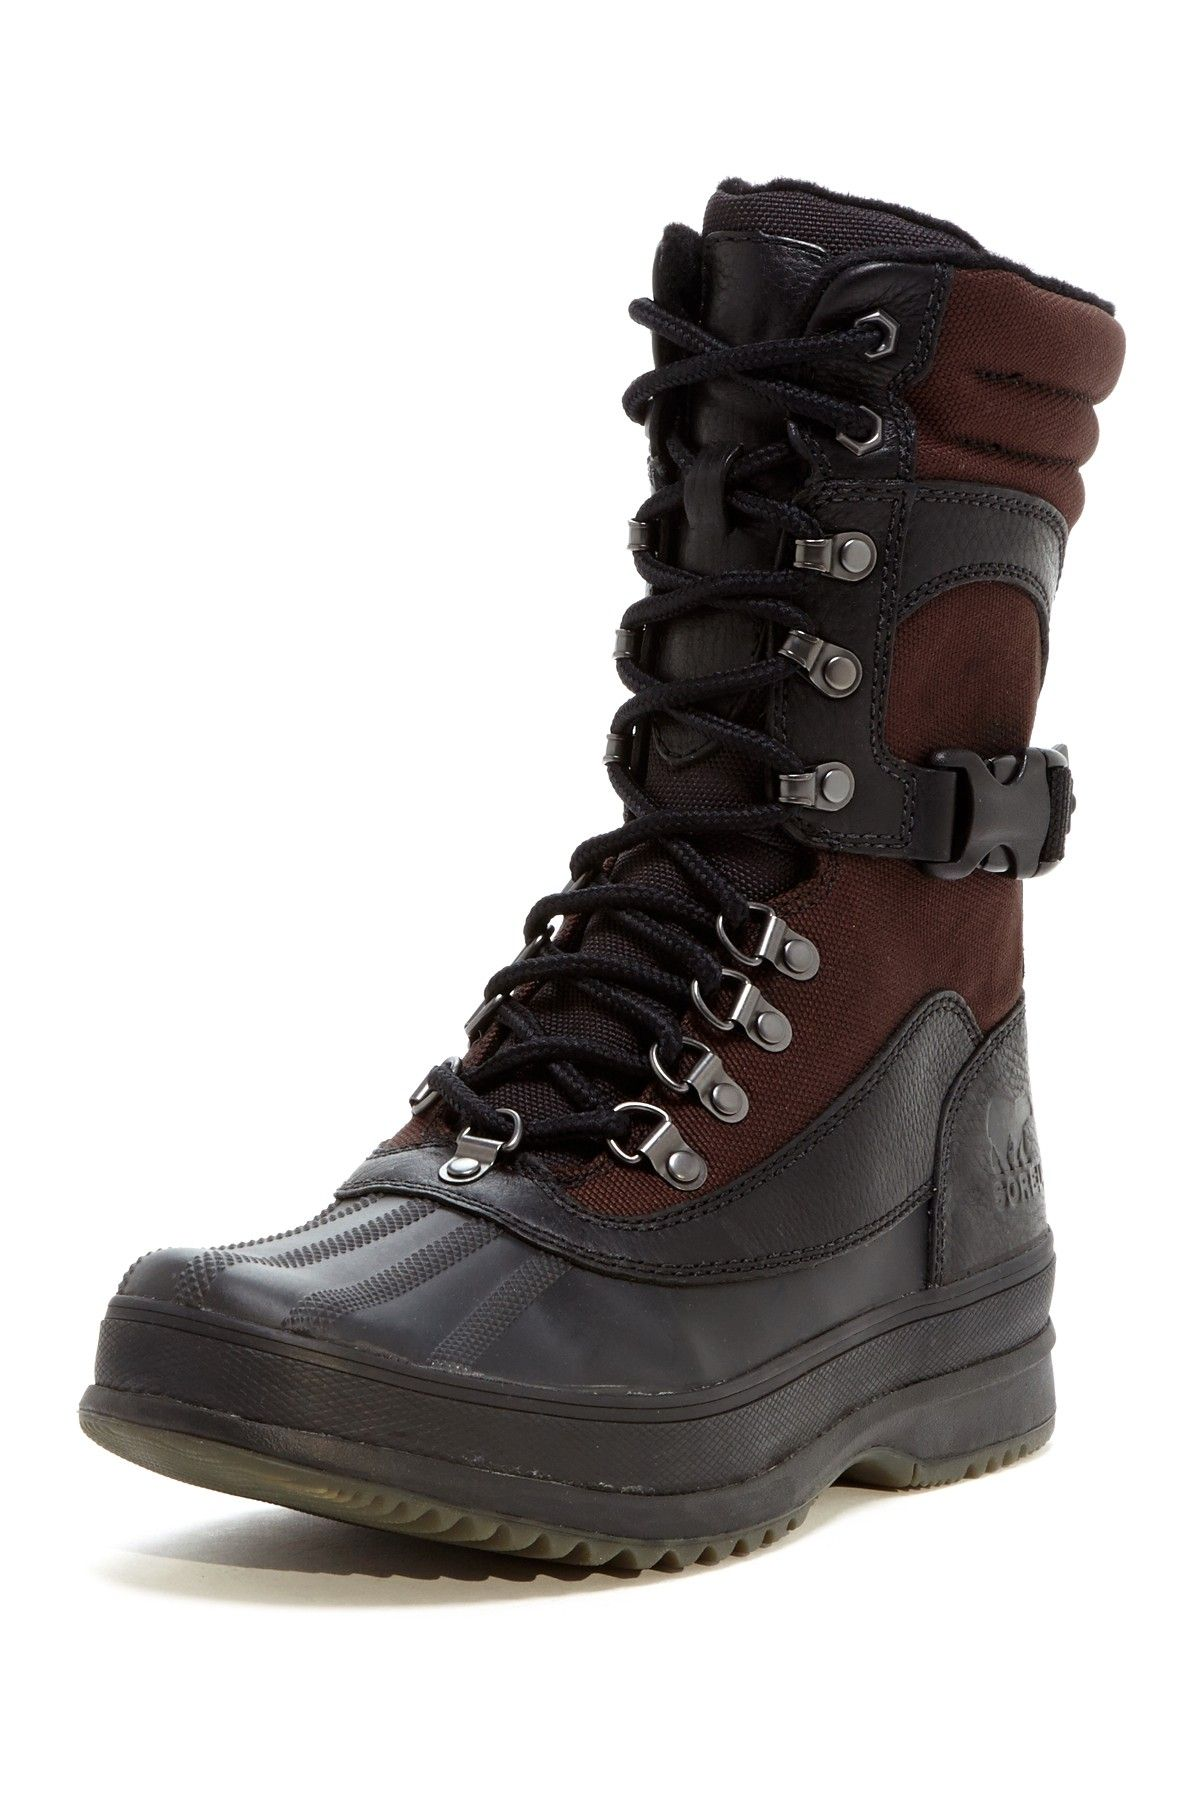 Kitchner Conquest Boot on HauteLook   Men s Clothing   Accessories ... b182fefb6f36